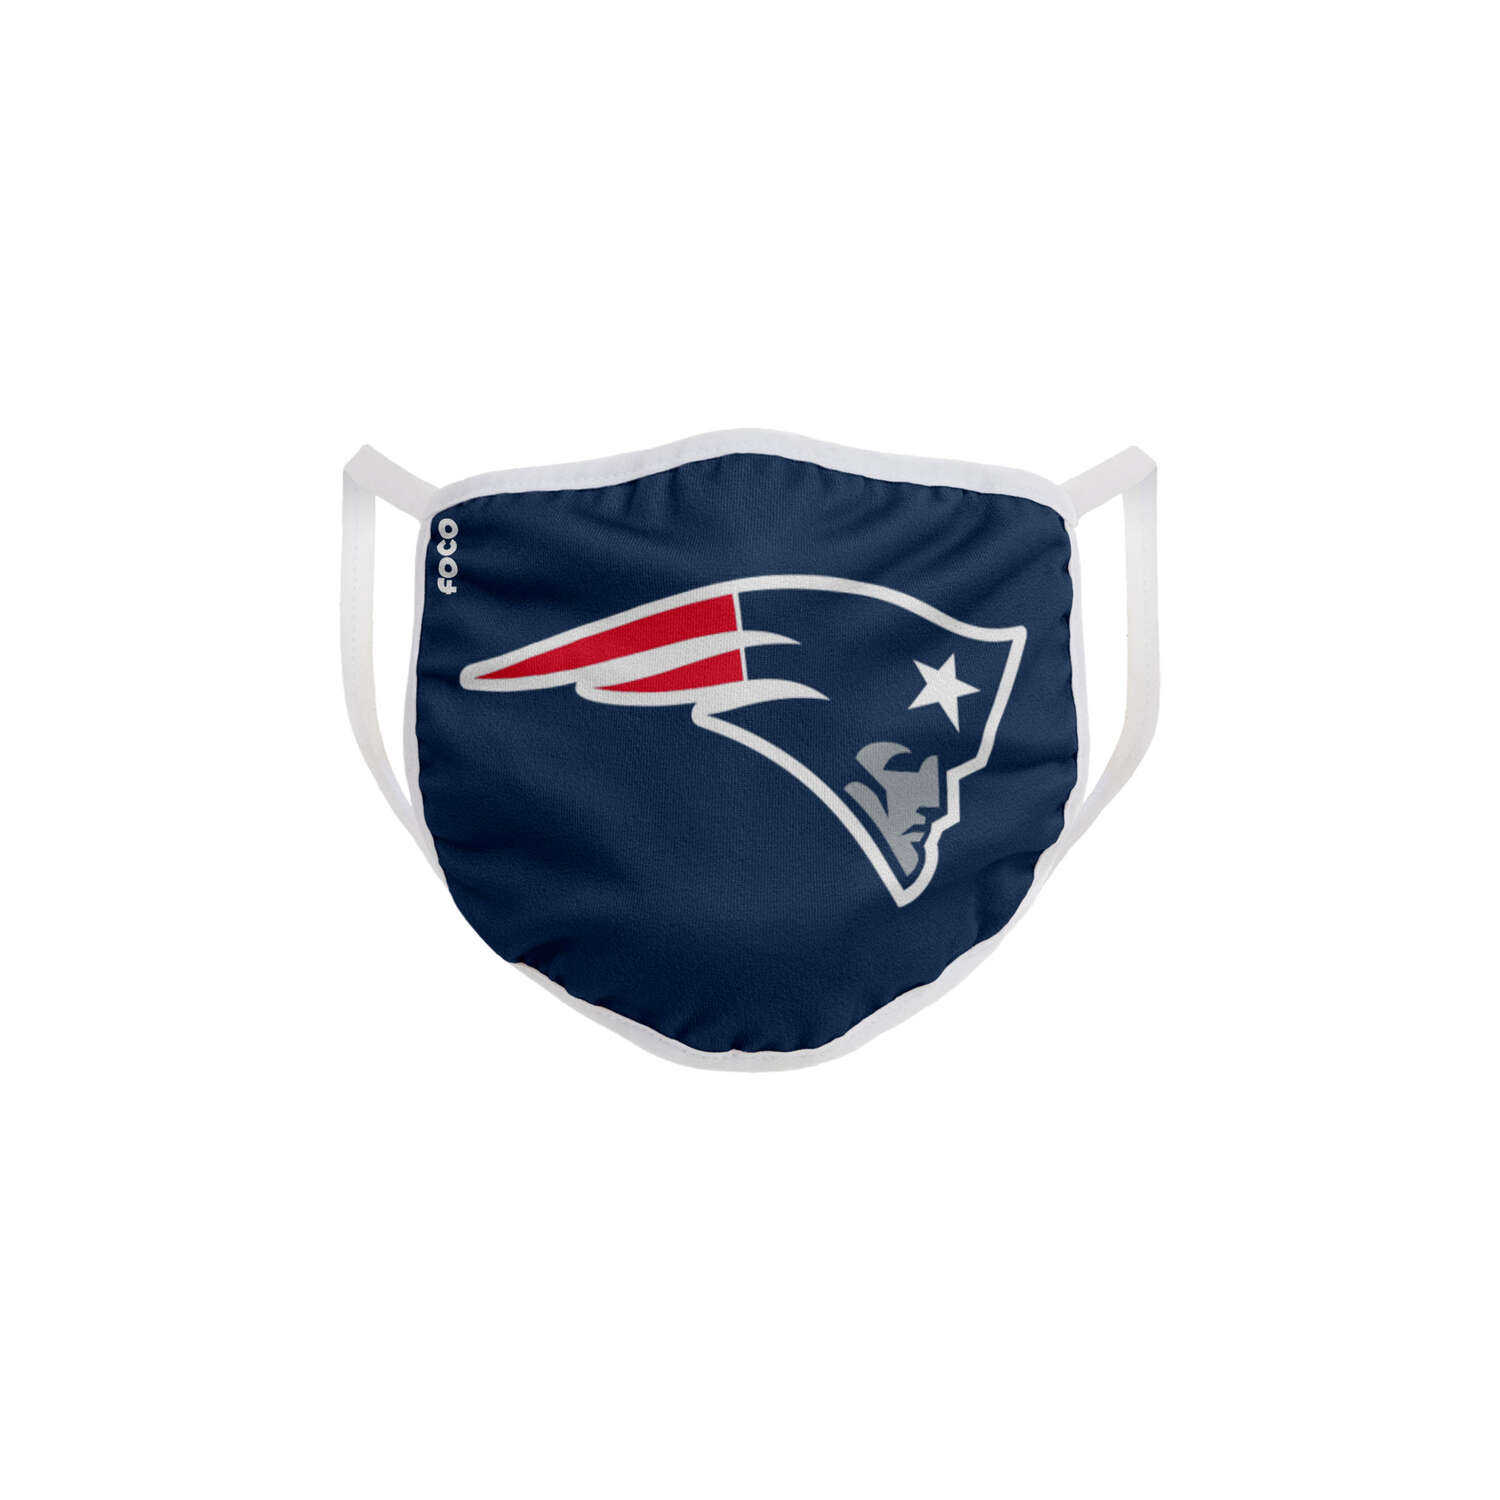 FOCO  Household Multi-Purpose  New England Patriots  Face Mask  Multicolored  1 pk